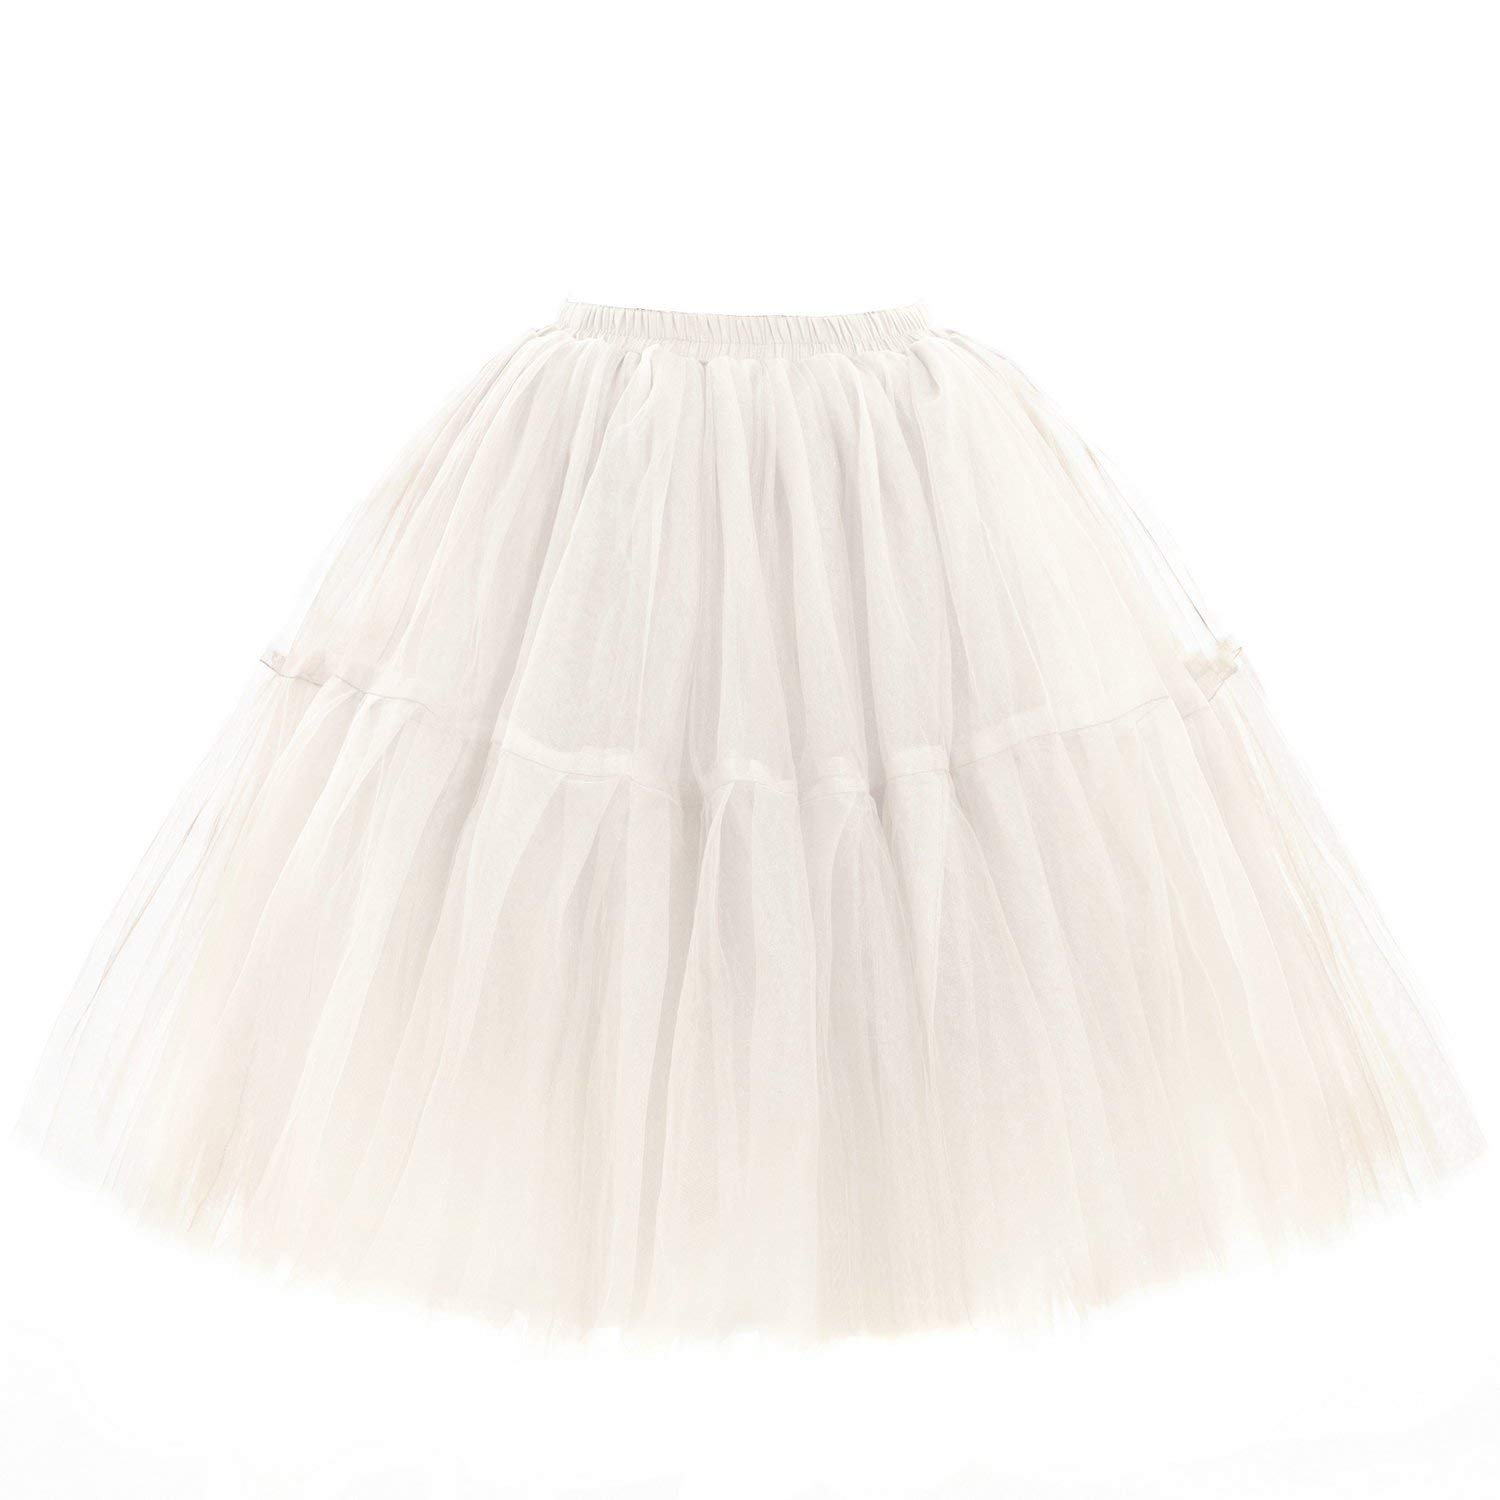 MisShow Lady's Tutu Skirt Soft Tulle Half Slips Knee Length Underskirt 18 Colors